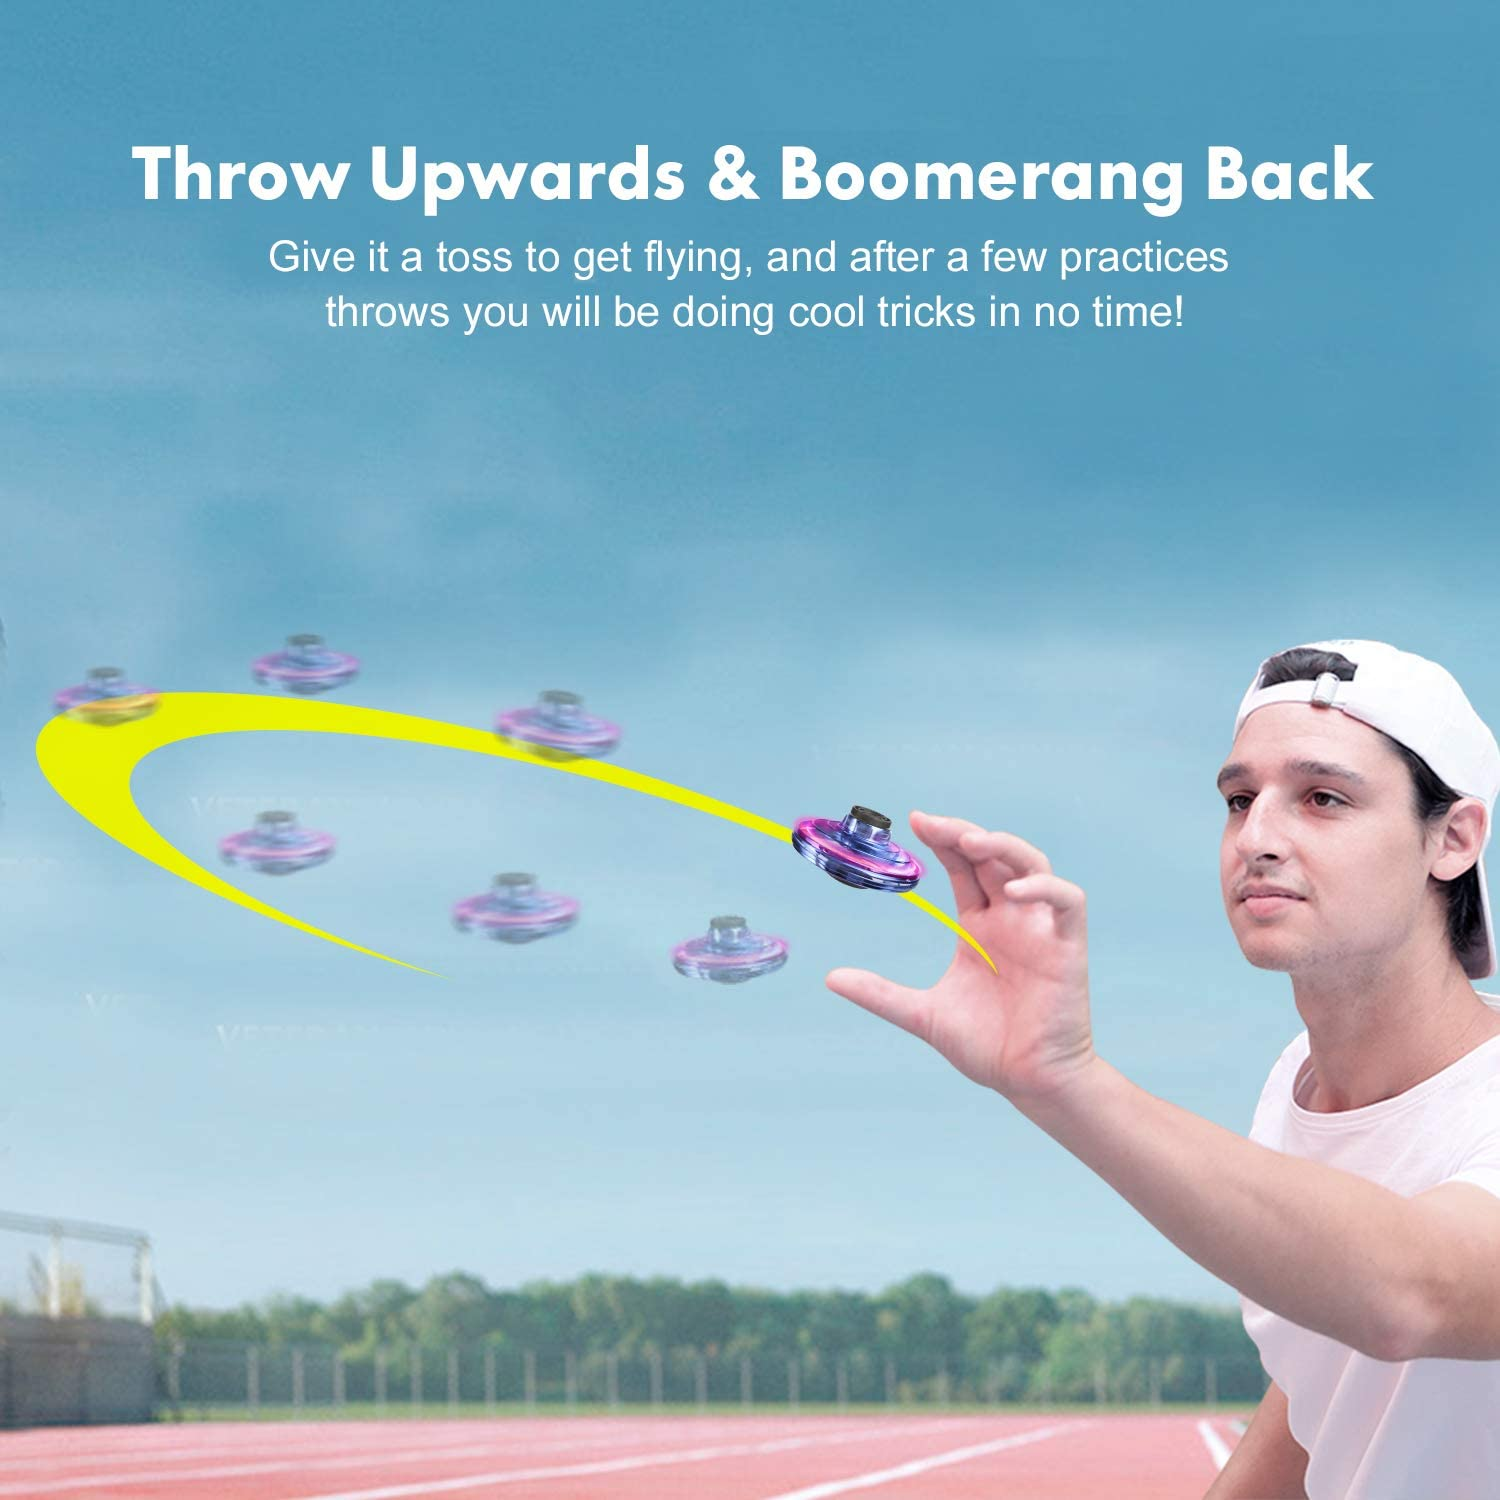 Infrared Induction Mini Drone Hand Operated for Office Outdoor Hand Controlled Flying Ball Toys with 360/°Rotating and Shinning LED Lights FlyNova Flying Toy Hand Operated Drones for Kids or Adults